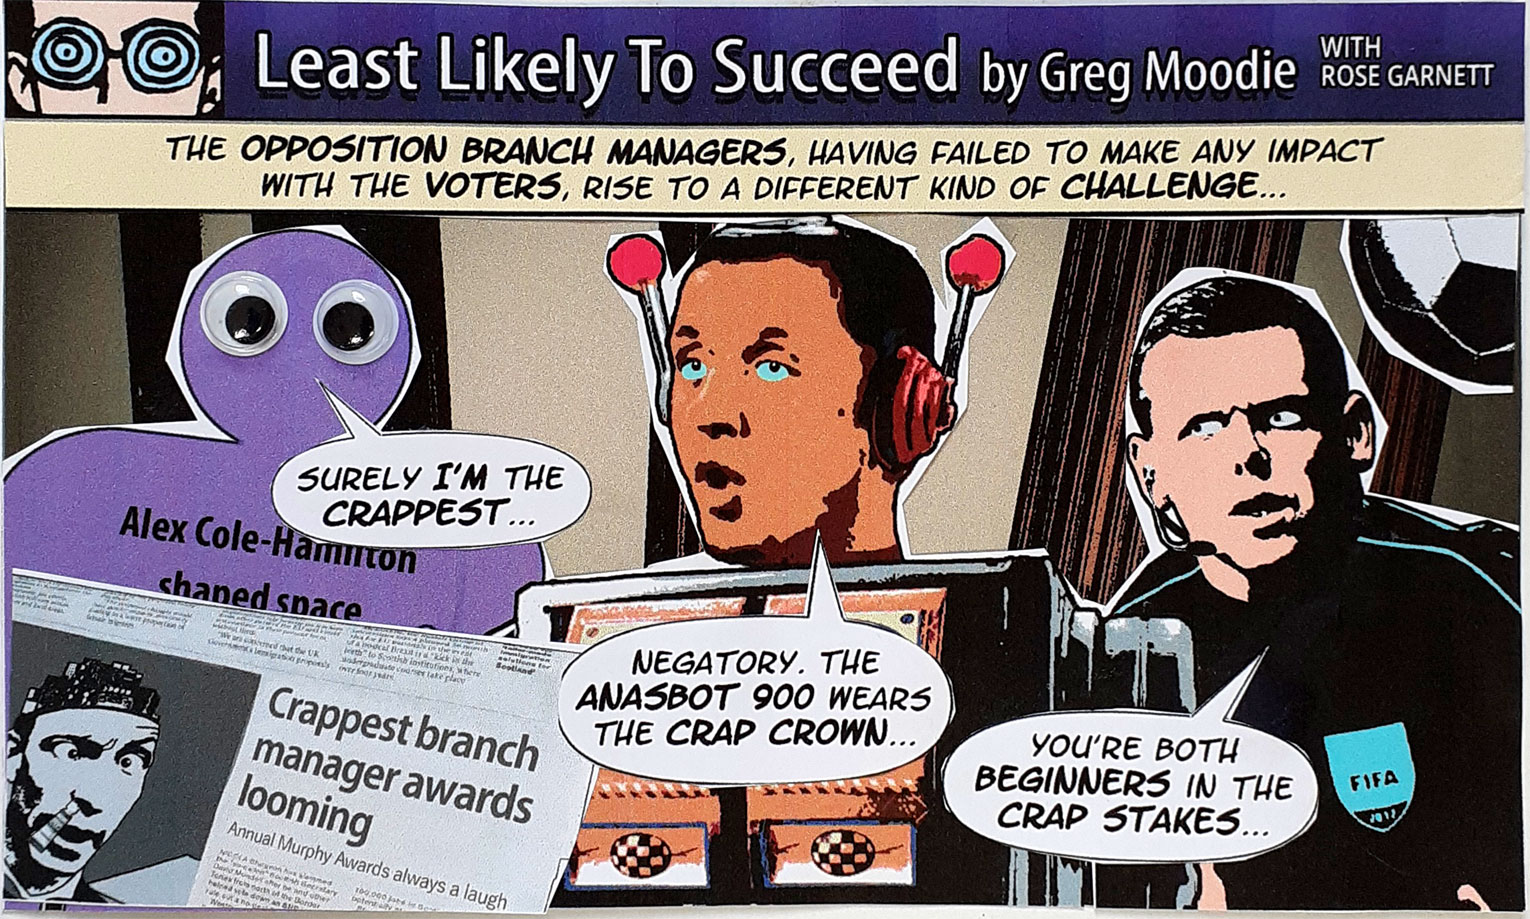 Least Likely To Succeed